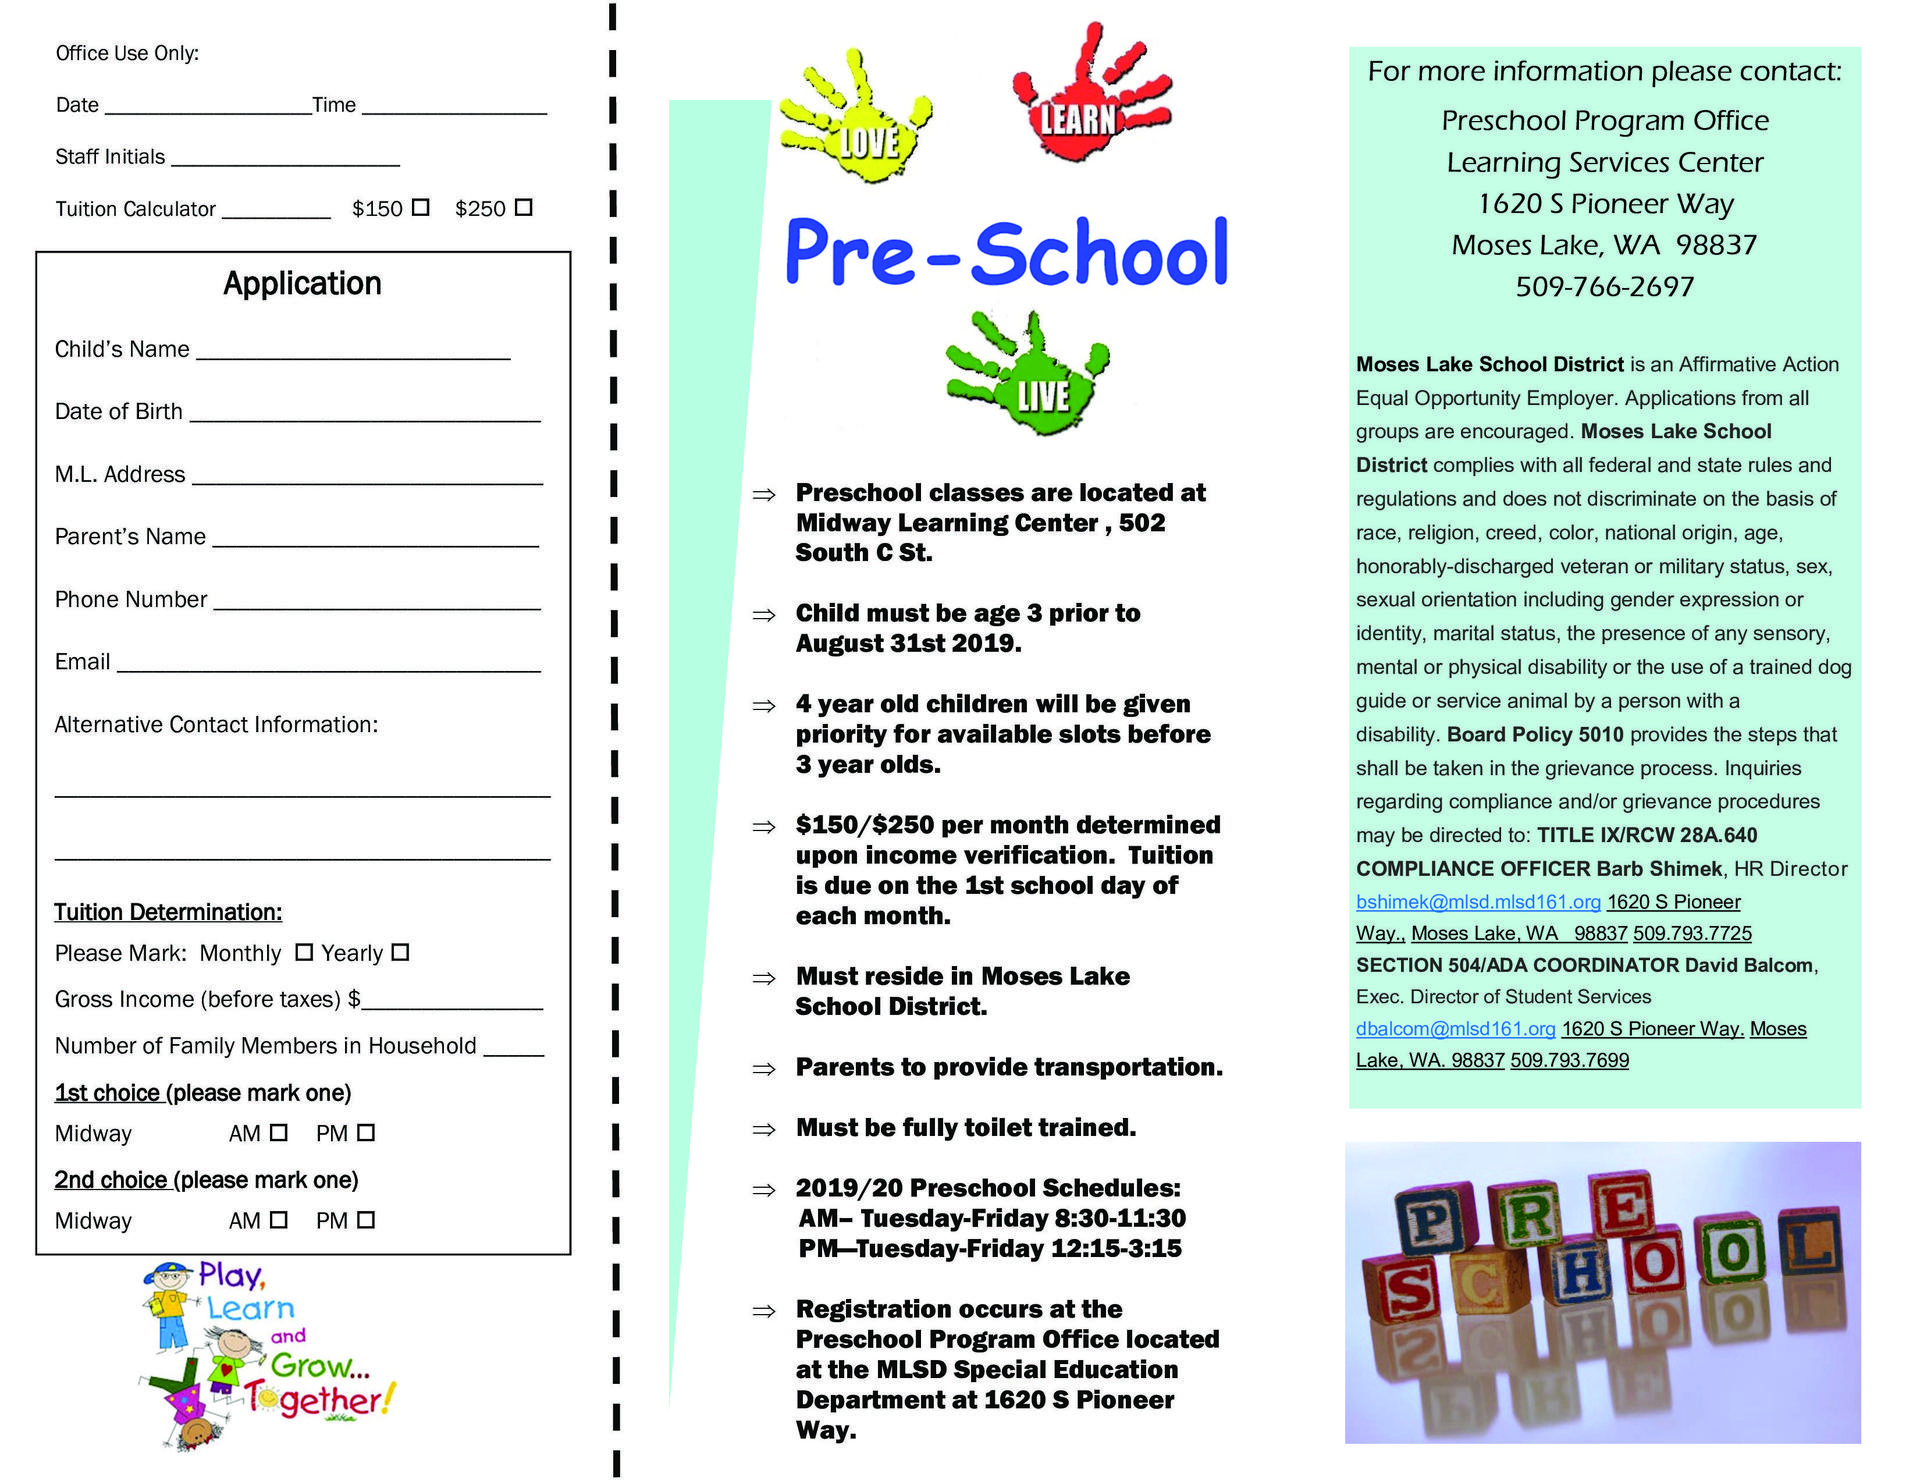 Integrated Preschool Brochure Page 2